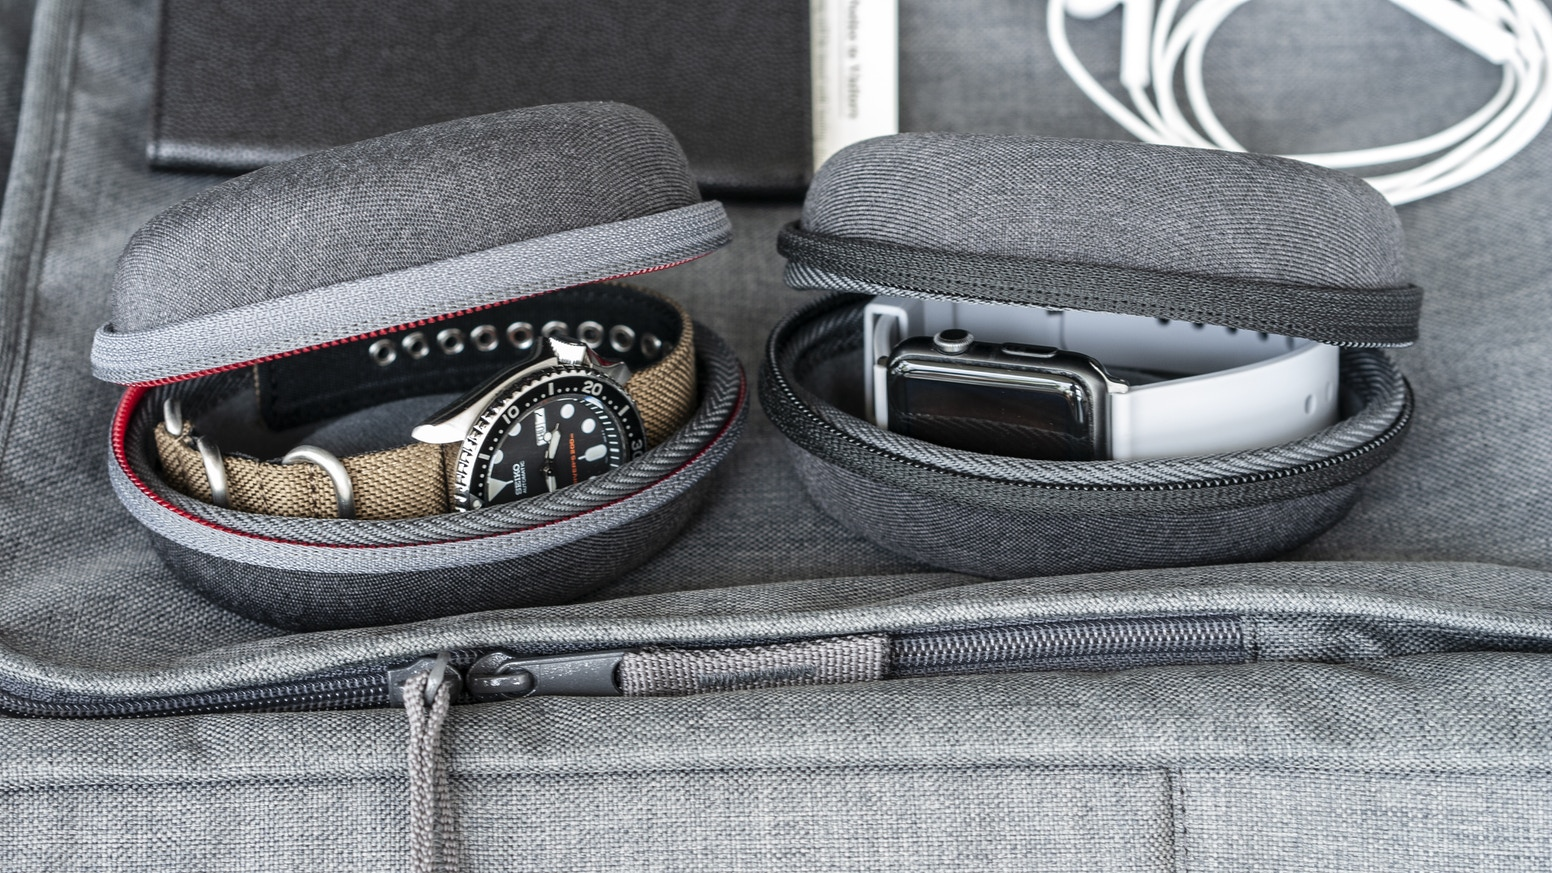 Sleek well made travel watch case for mechanical, quartz, smartwatches of all sizes